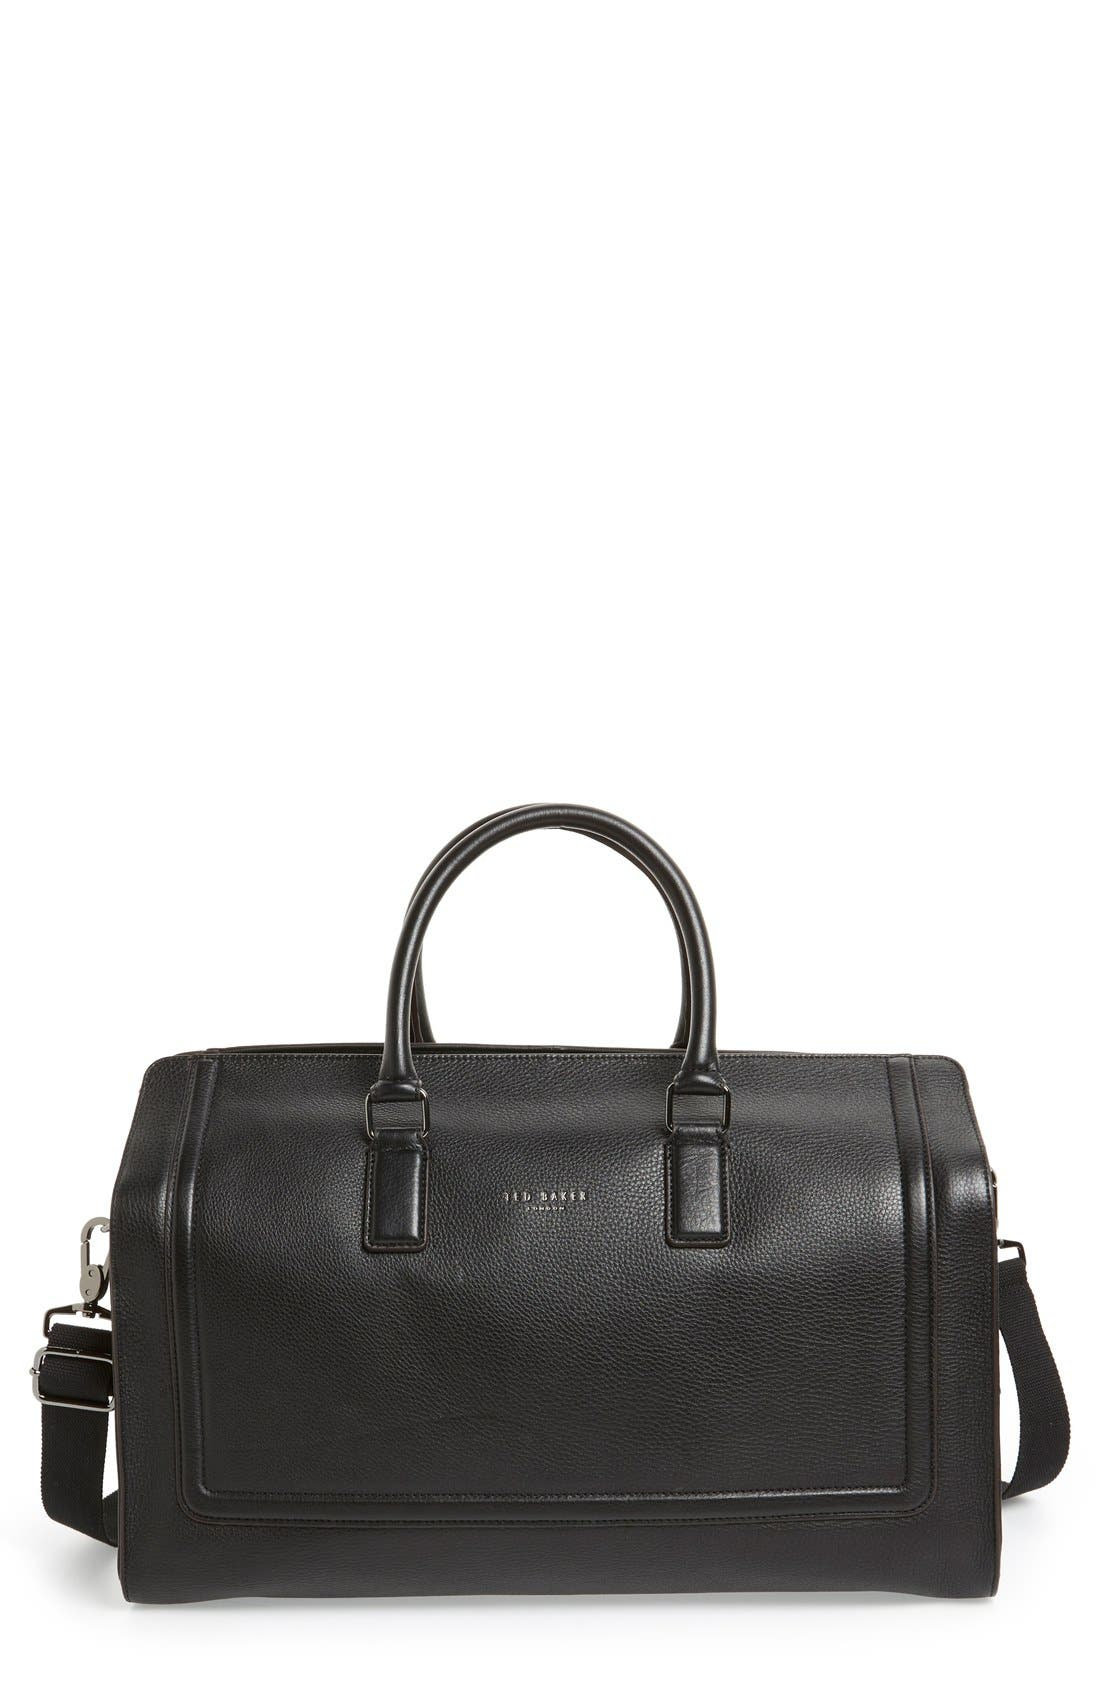 Main Image - Ted Baker London 'Shalala' Leather Duffel Bag